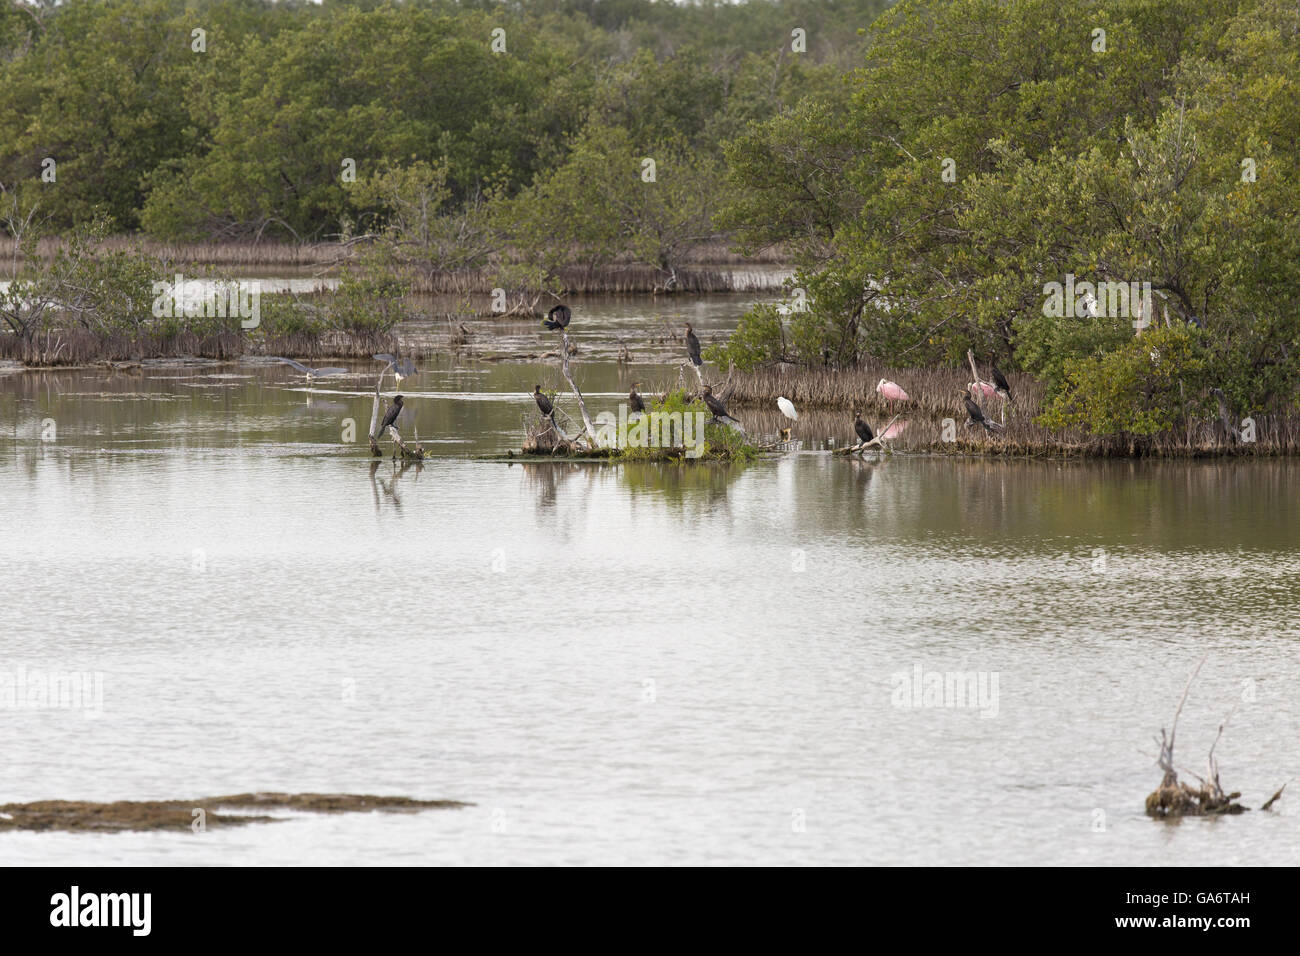 Zapata swamp with mangroves and roseate spoonbill, herons, cormorants, and other bird species - Stock Image